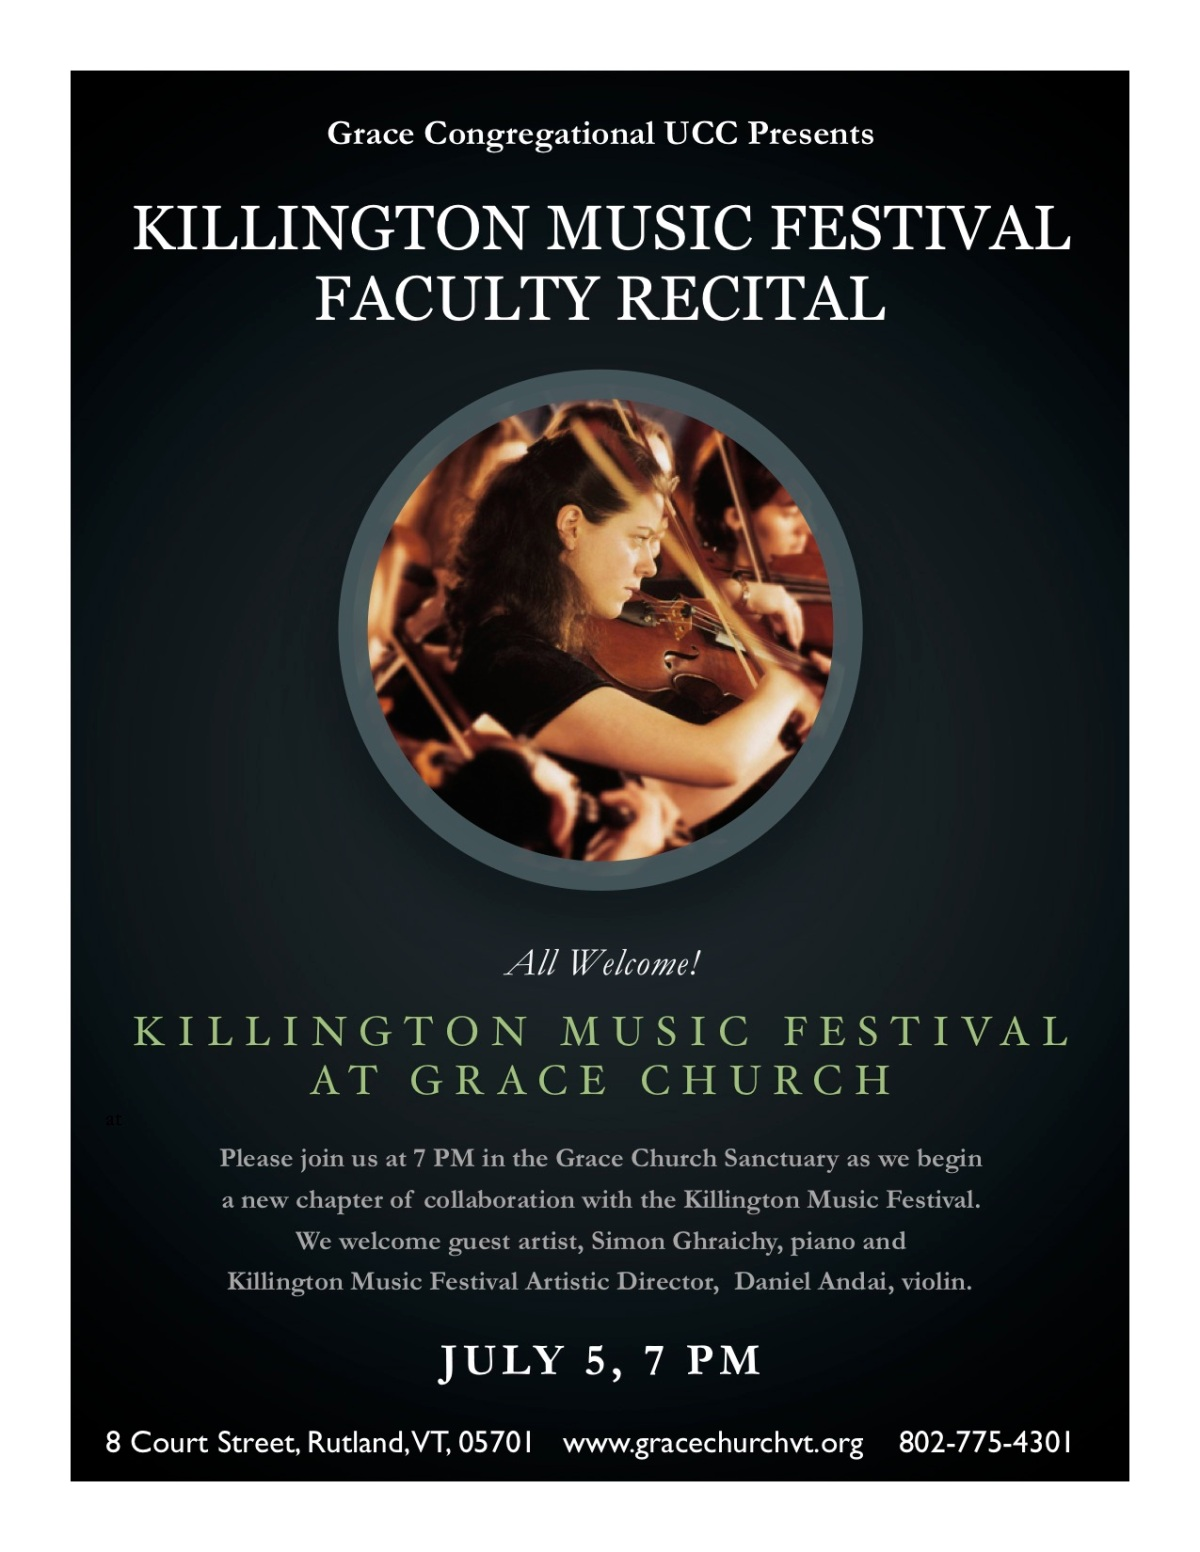 Killington Music Festival Faculty Recital – July 5